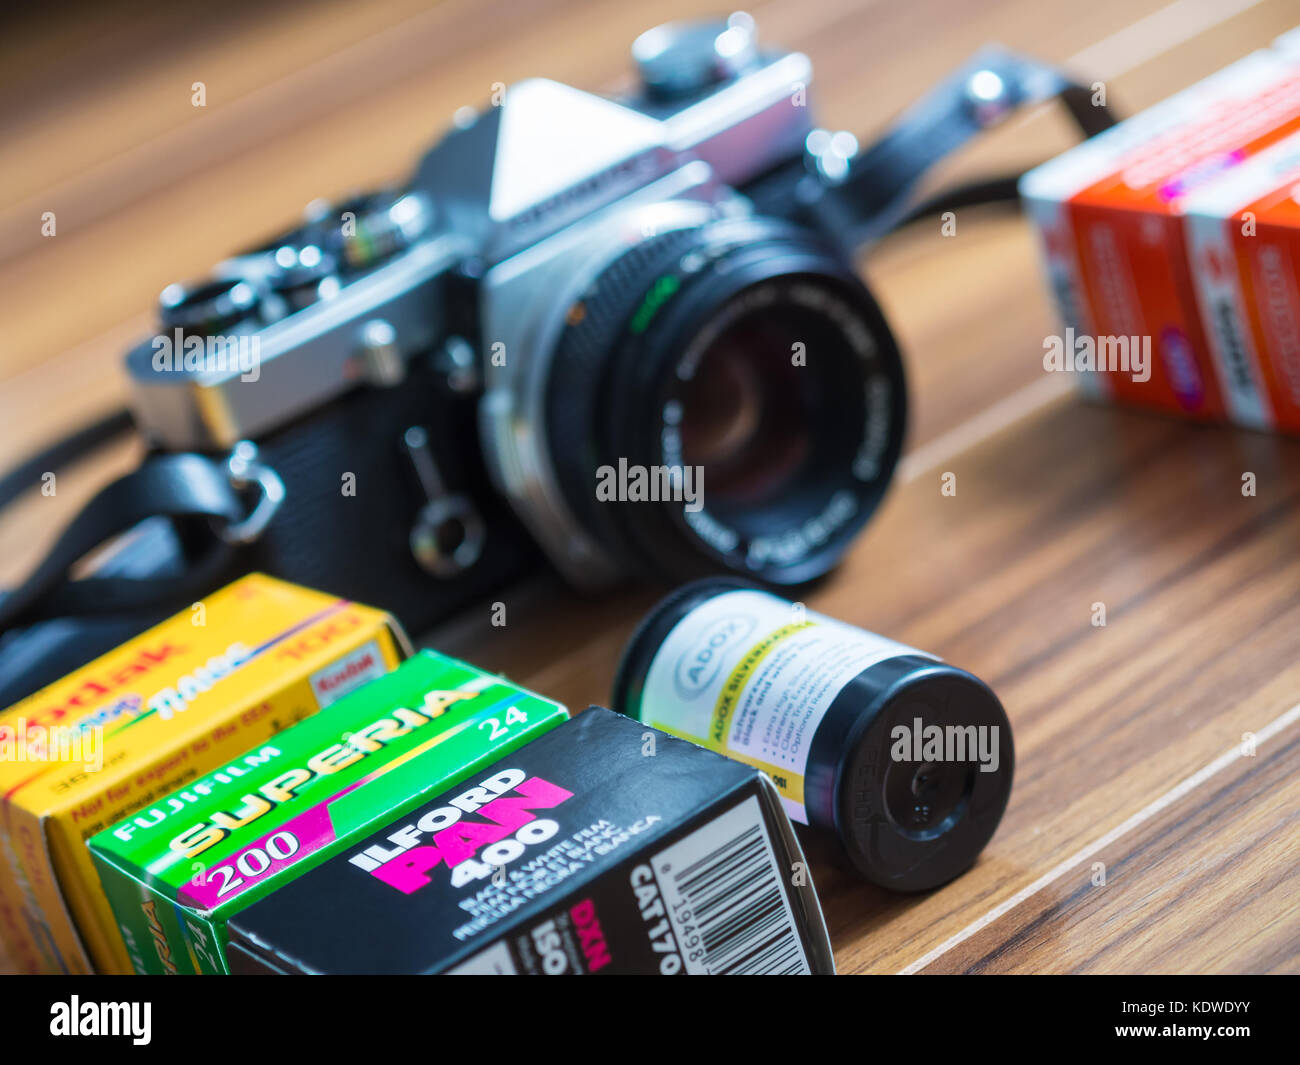 Moscow, Russia - June 09, 2016: Film Photography. Fujicolor, Kodak, Ilford, Adox and Agfacolor 35mm film rolls and Stock Photo